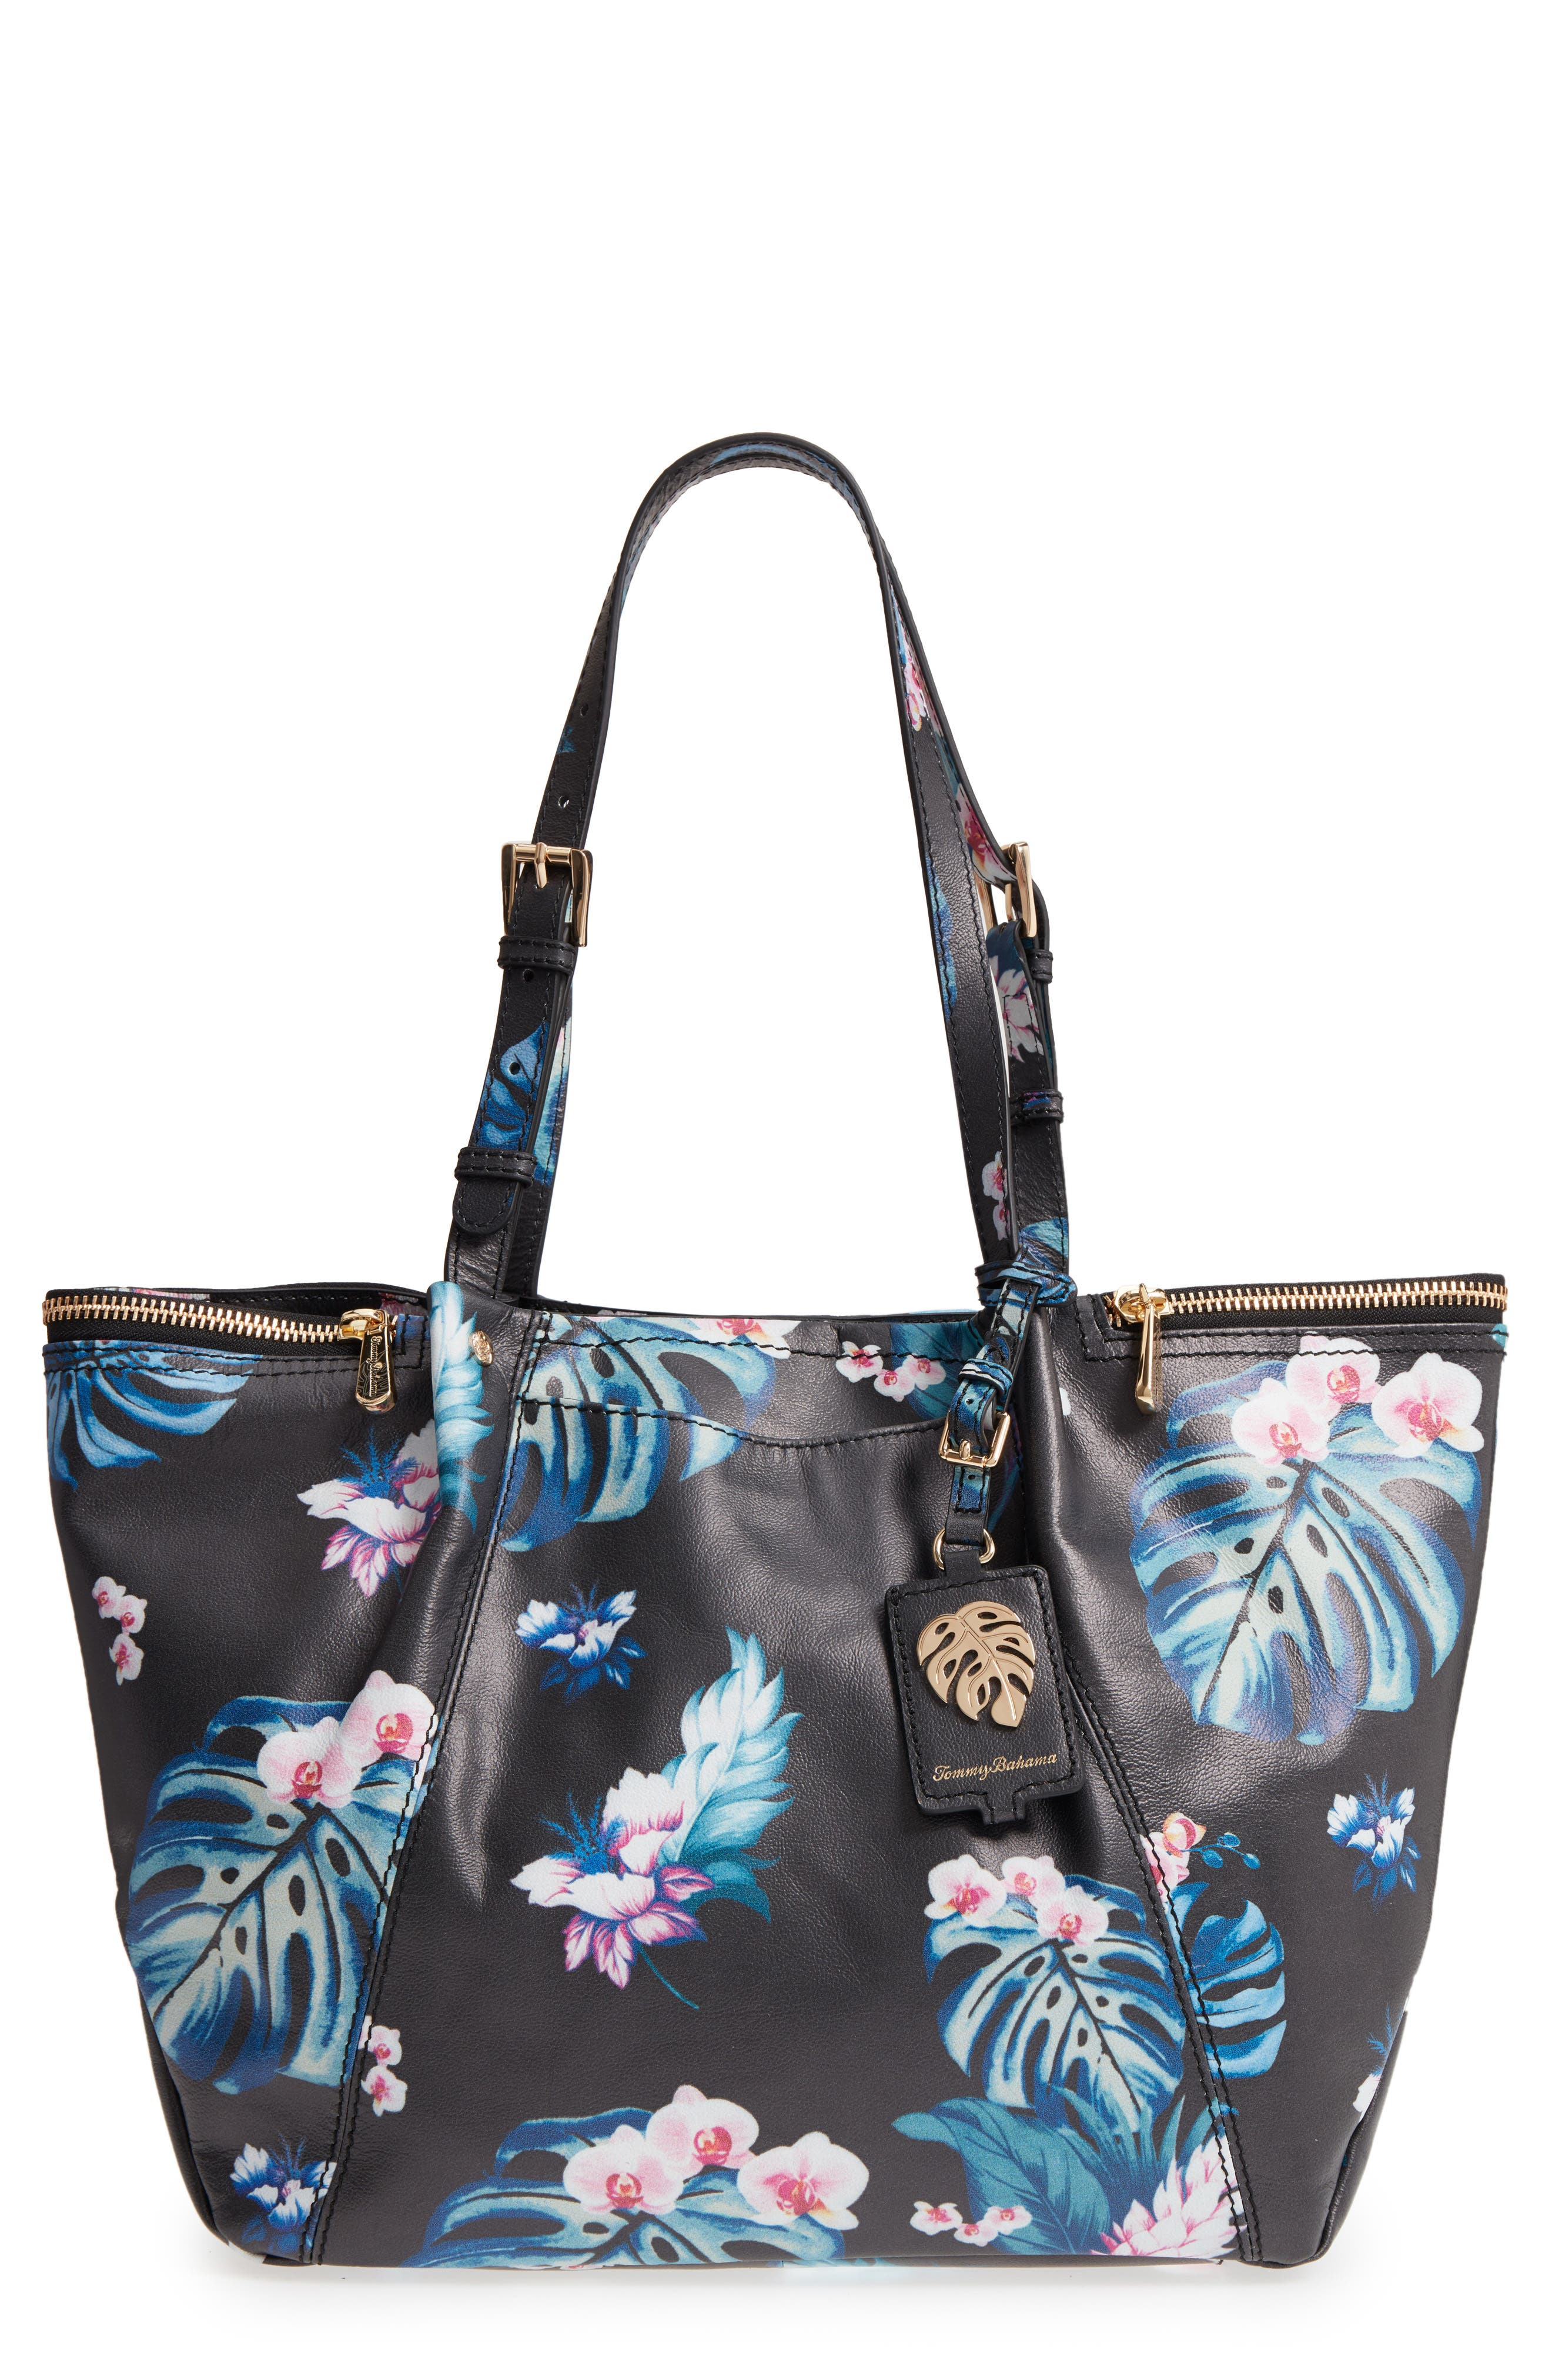 St. Lucia Printed Leather Tote,                             Main thumbnail 1, color,                             001